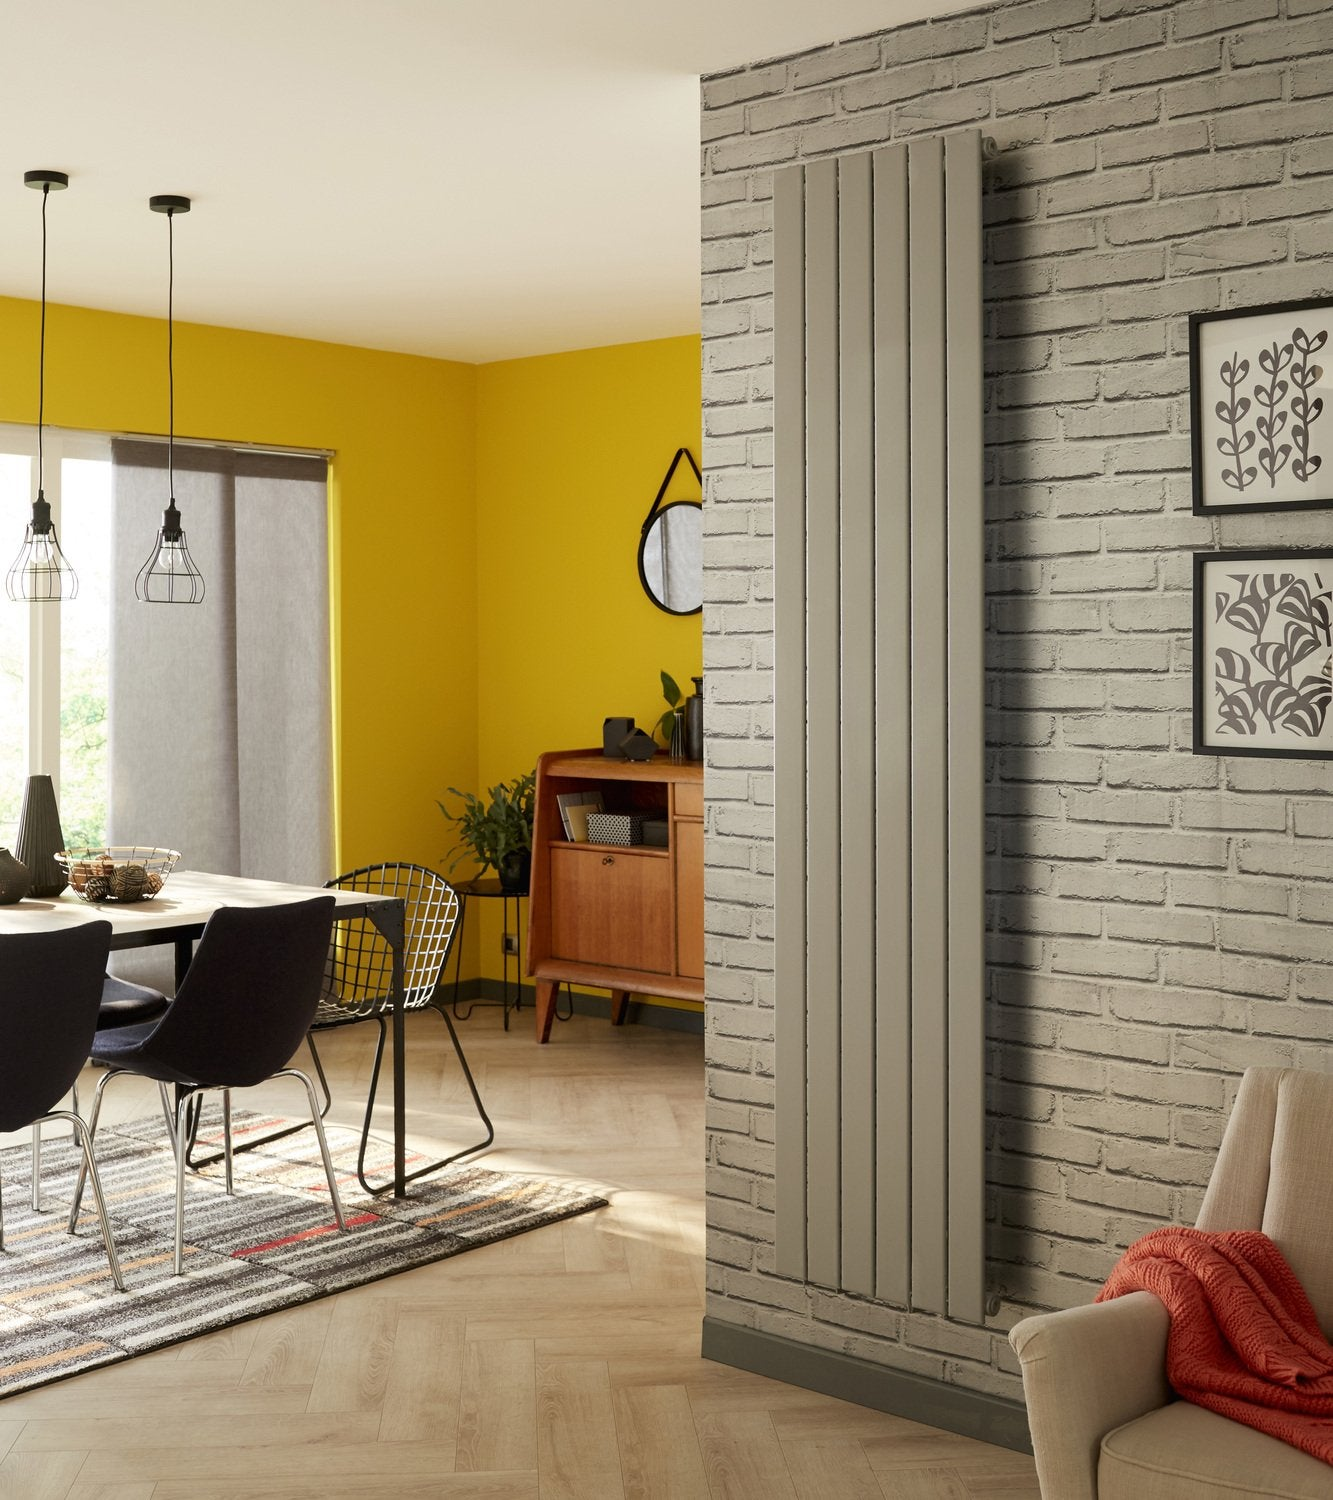 grille radiateur leroy merlin simple feuille inox avec. Black Bedroom Furniture Sets. Home Design Ideas